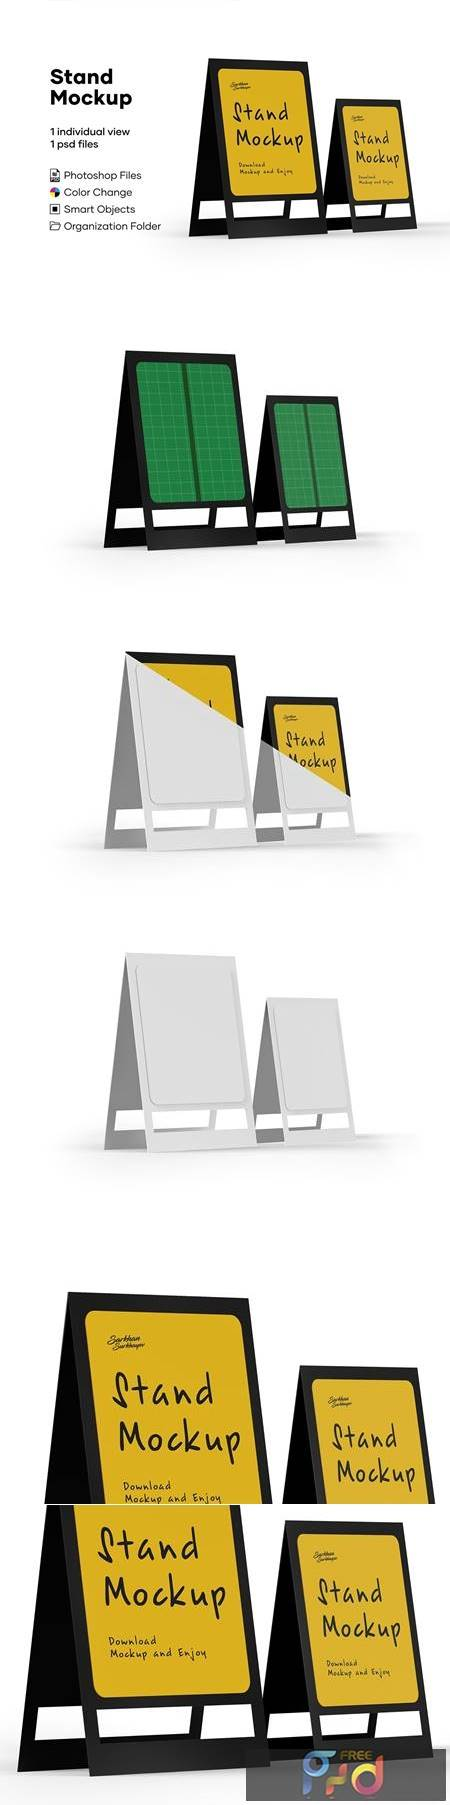 Pavement Sign Mockup 5242073 1